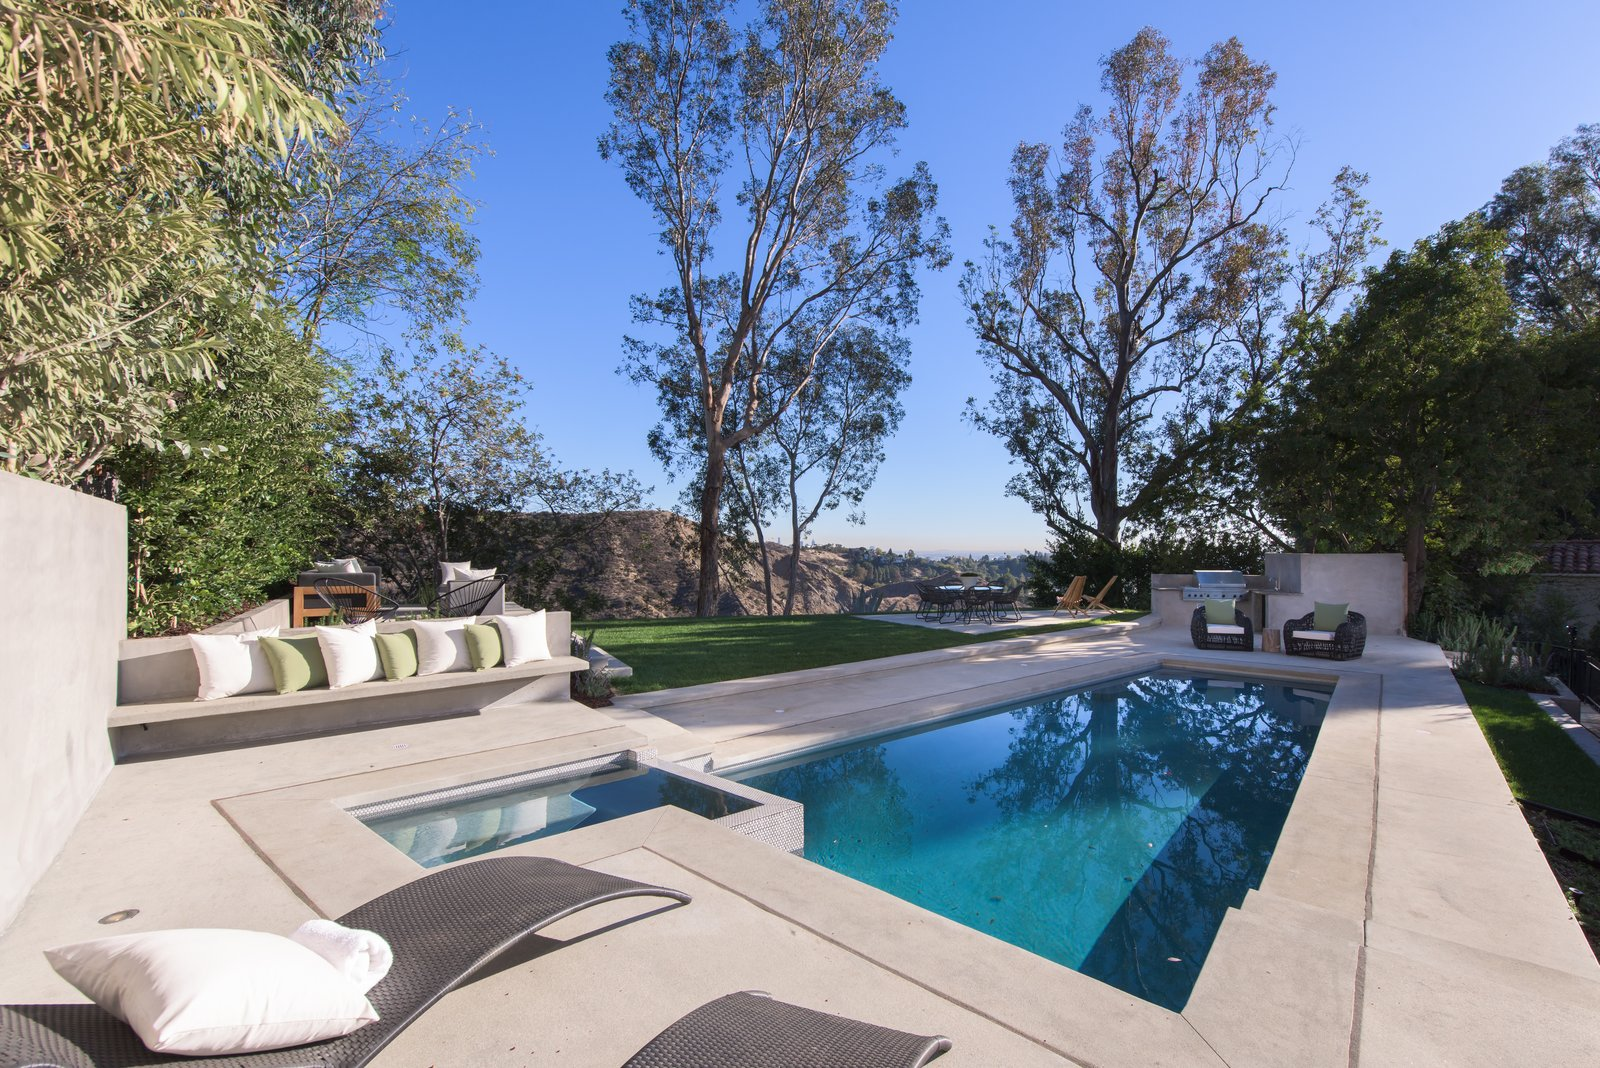 Outdoor, Small, Large, Grass, Back Yard, Trees, Hot Tub, and Plunge An outdoor kitchen, green lawn and pool makes the rear-yard the perfect spot of outdoor soirees.  Best Outdoor Back Yard Hot Tub Photos from Red Hot Chili Peppers Frontman Anthony Kiedis' Former L.A. Abode Asks $3.2M